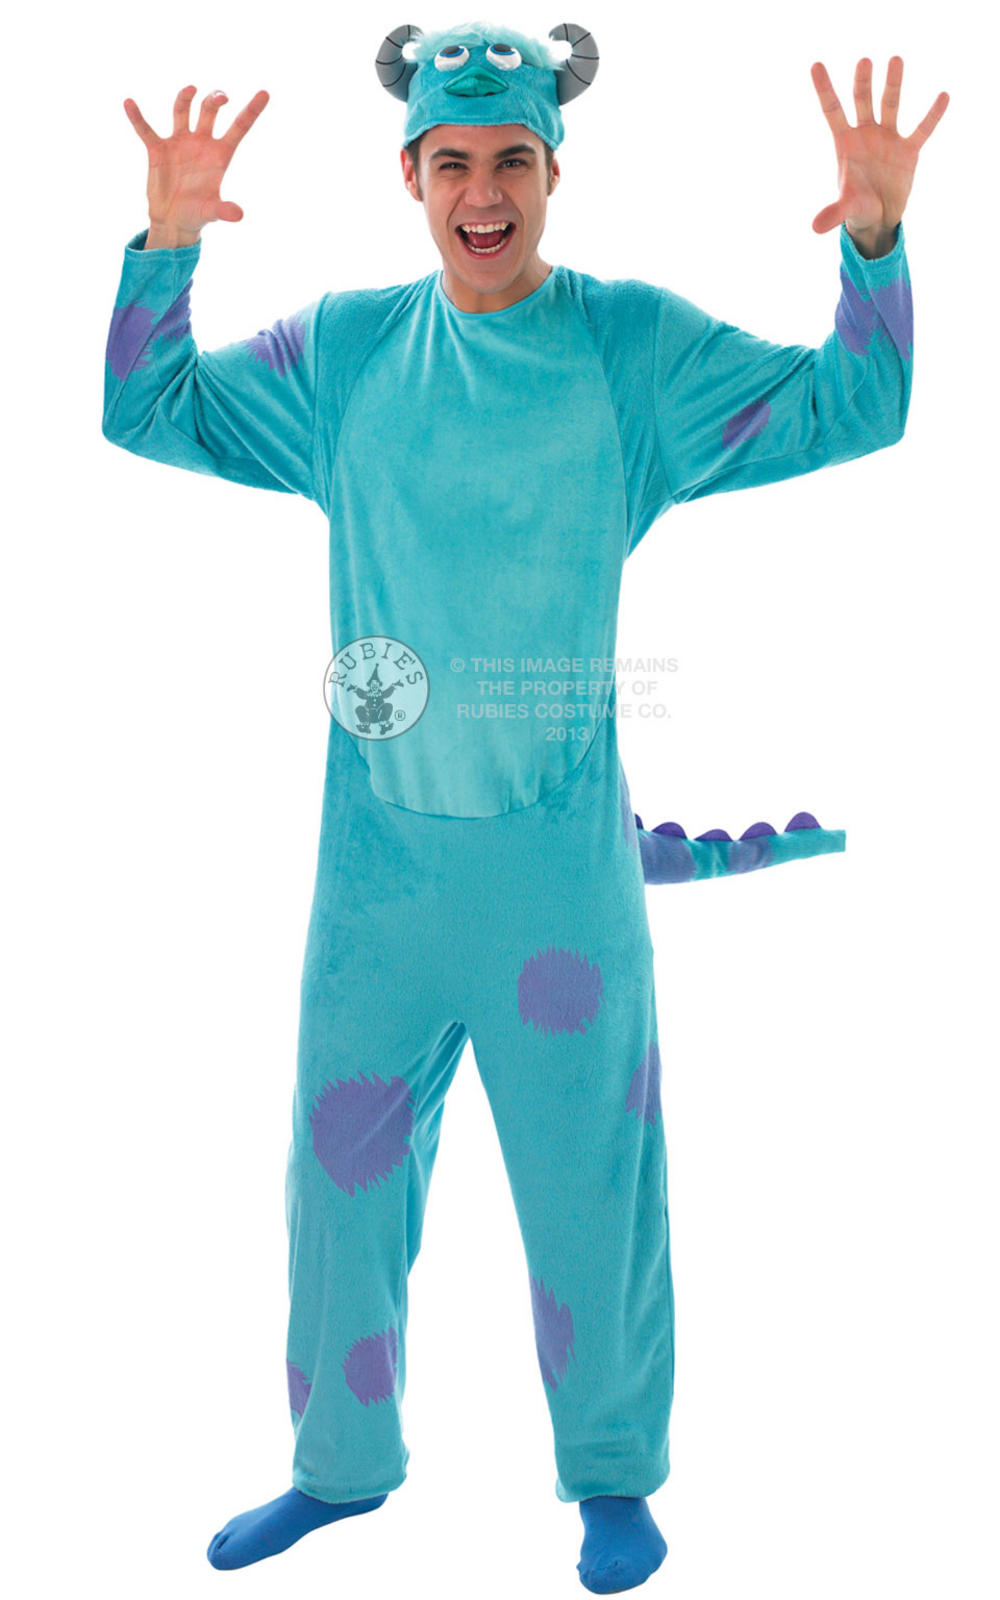 Monsters Inc. Sully Costume  sc 1 st  Mega Fancy Dress & Monsters Inc. Sully Costume | TV Book and Film Costumes | Mega ...